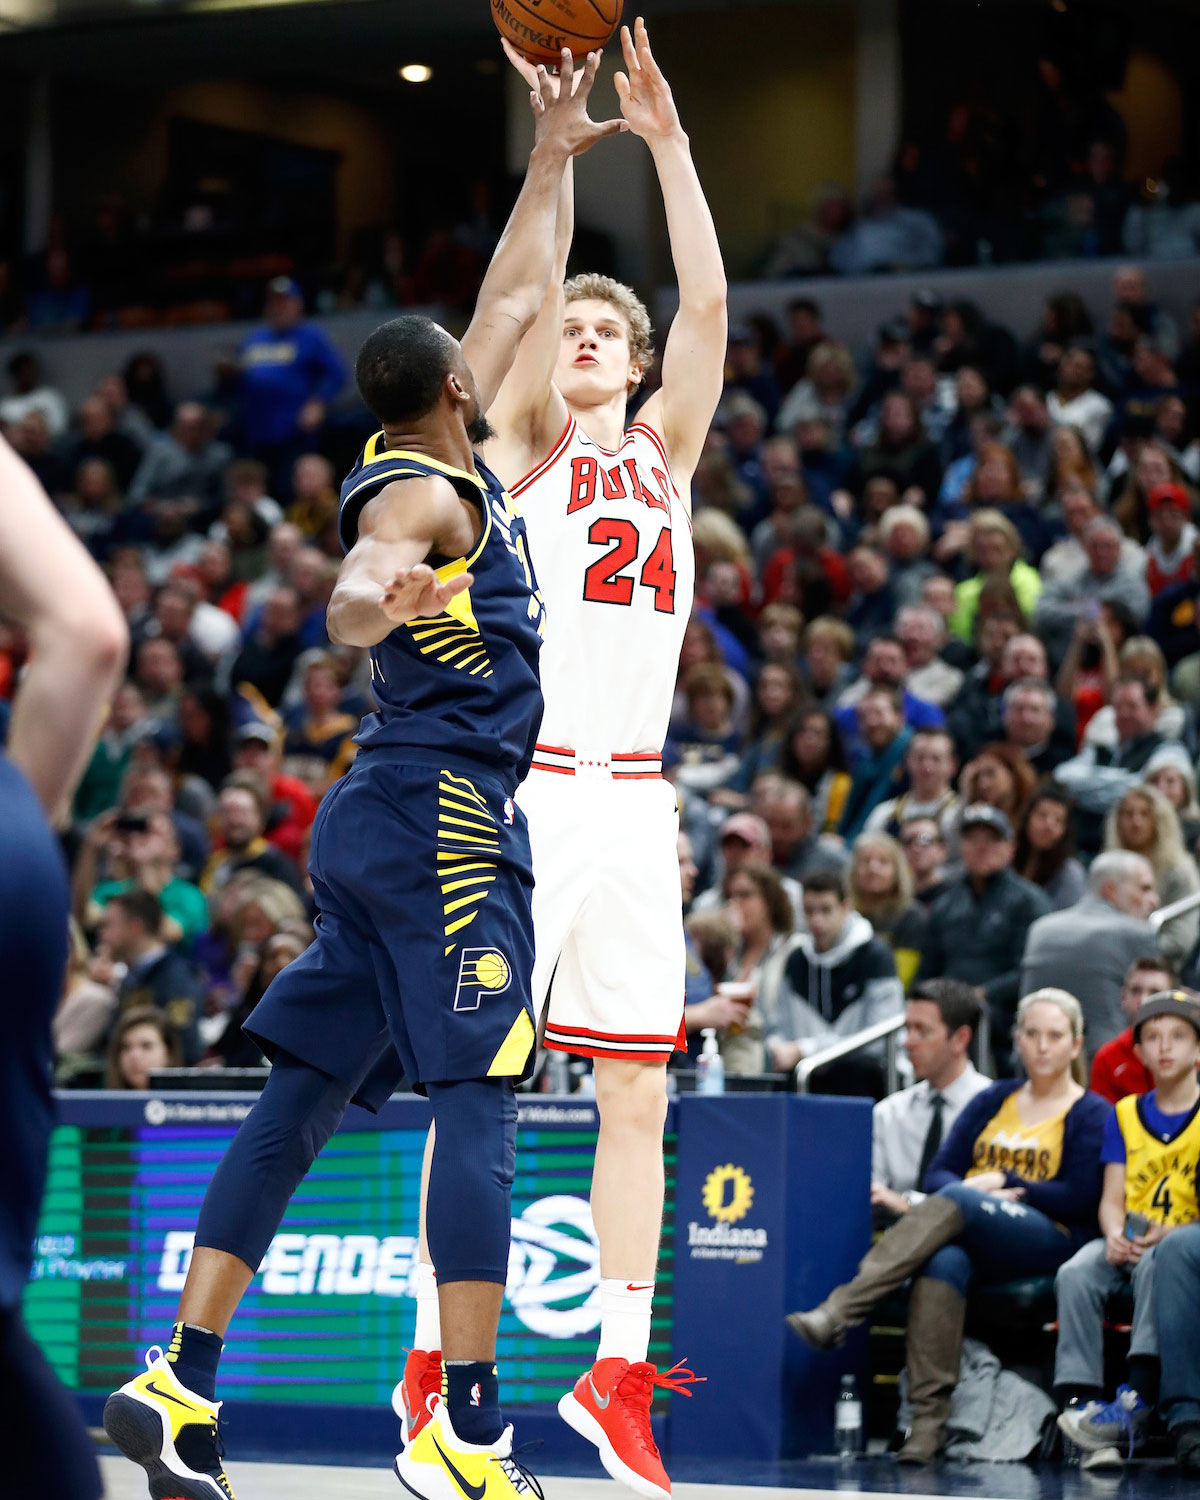 Lauri Markkanen shoots the ball.